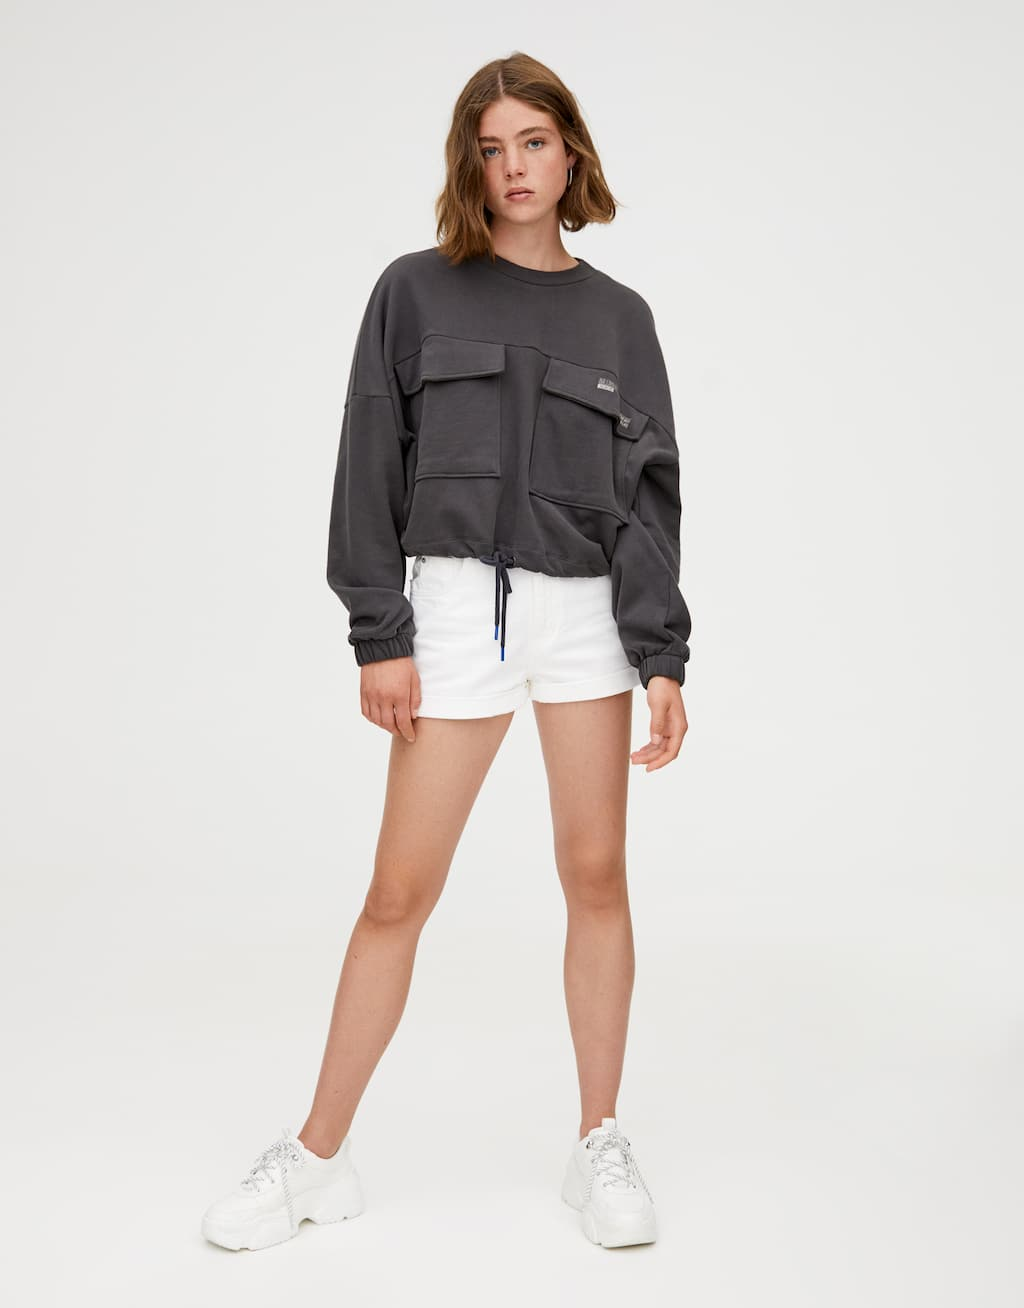 Sweatshirt With Printed Chest Pockets by Pull & Bear